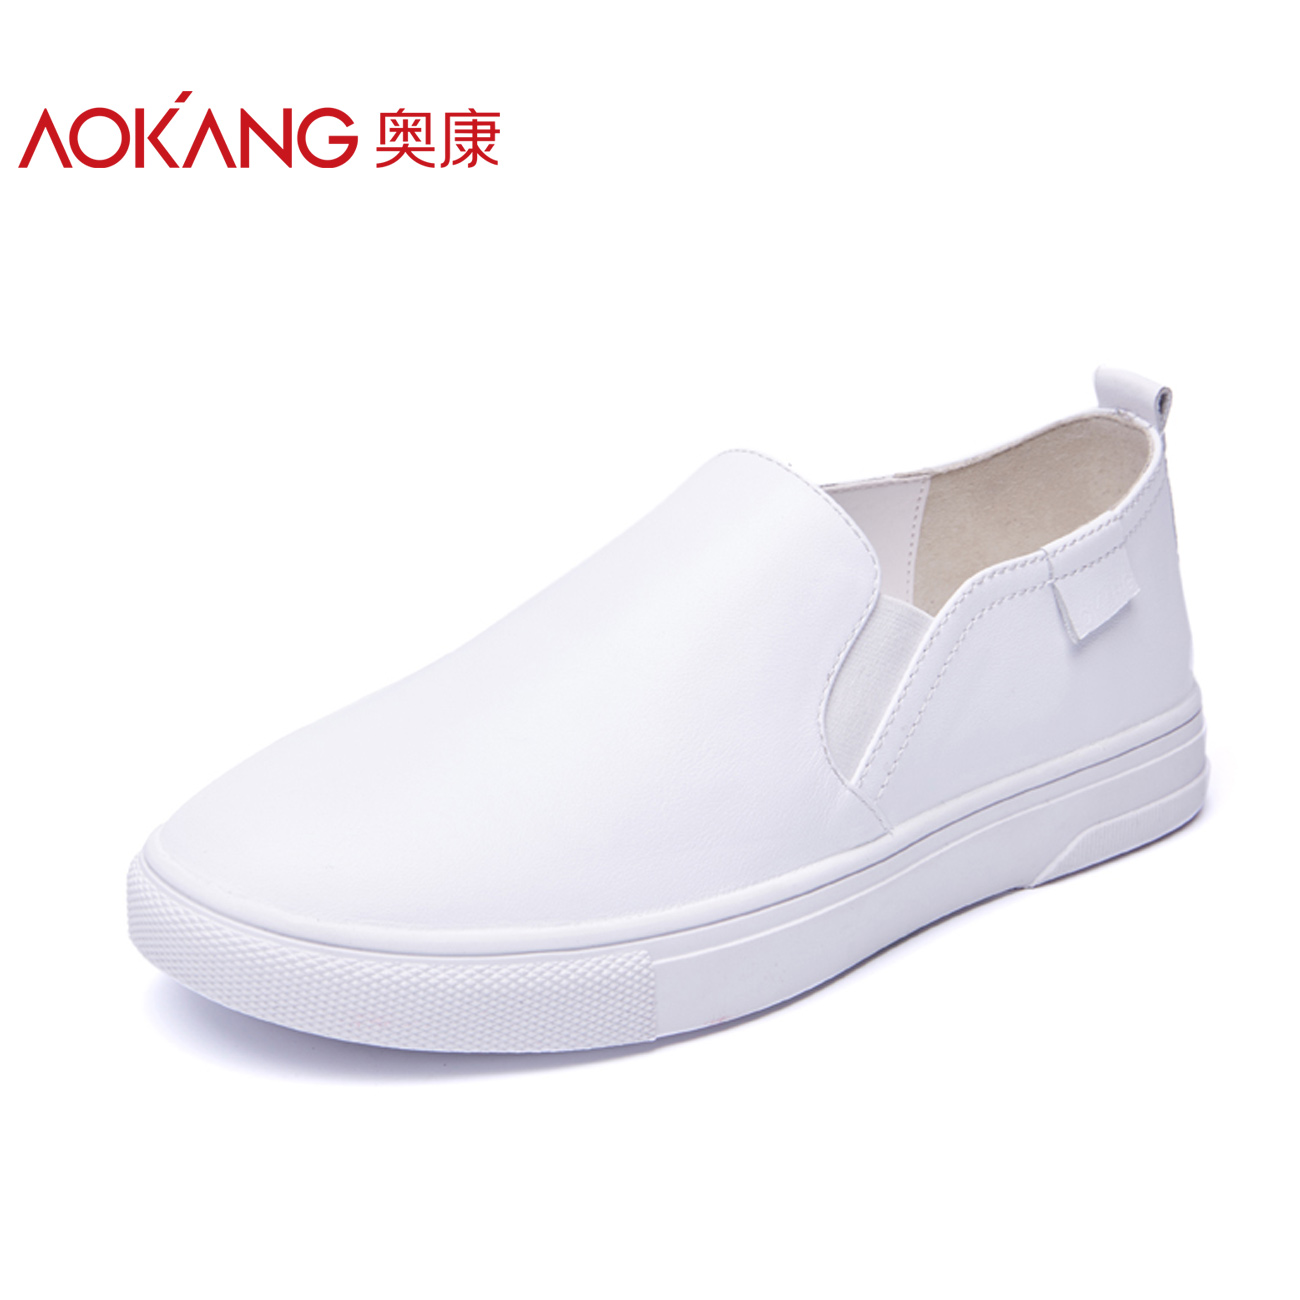 Aokang Women's Shoes Spring and Autumn Flat-soled Comfortable Women's Single Shoes Genuine Leather Fashion Casual Shoes Lifting Lefu Shoes